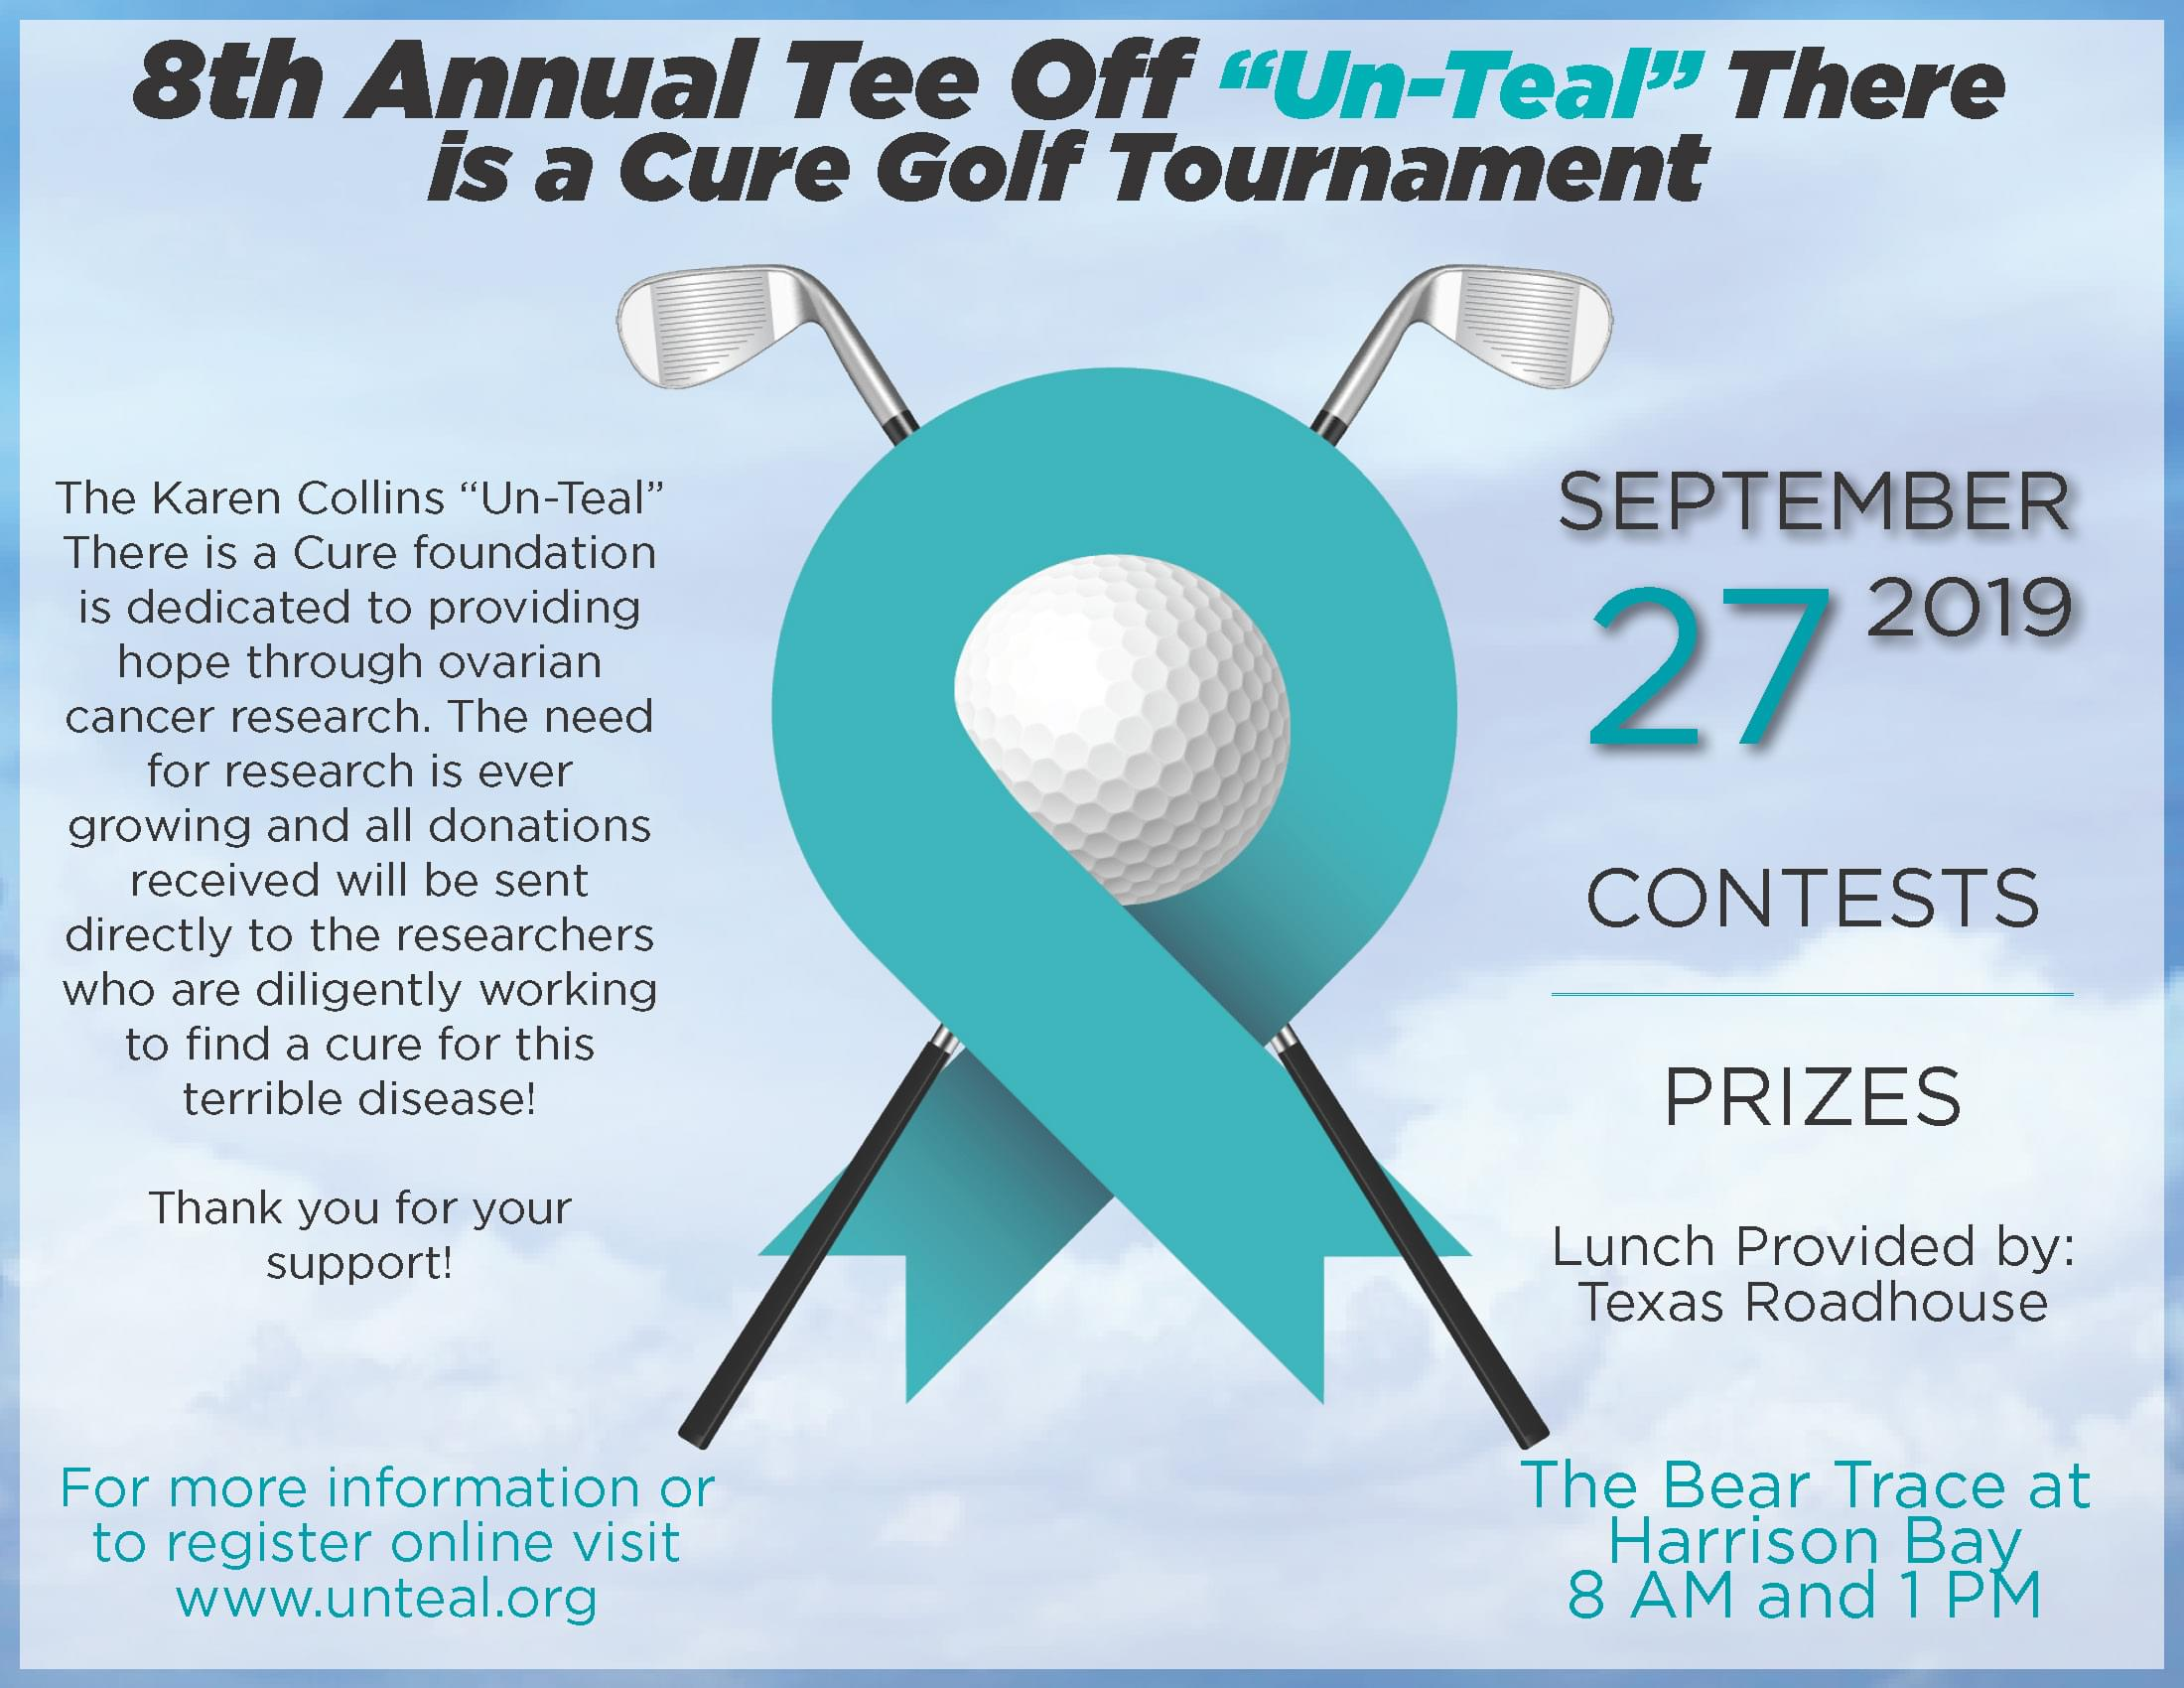 Tee Off Un-Teal There is a Cure Golf Tournament